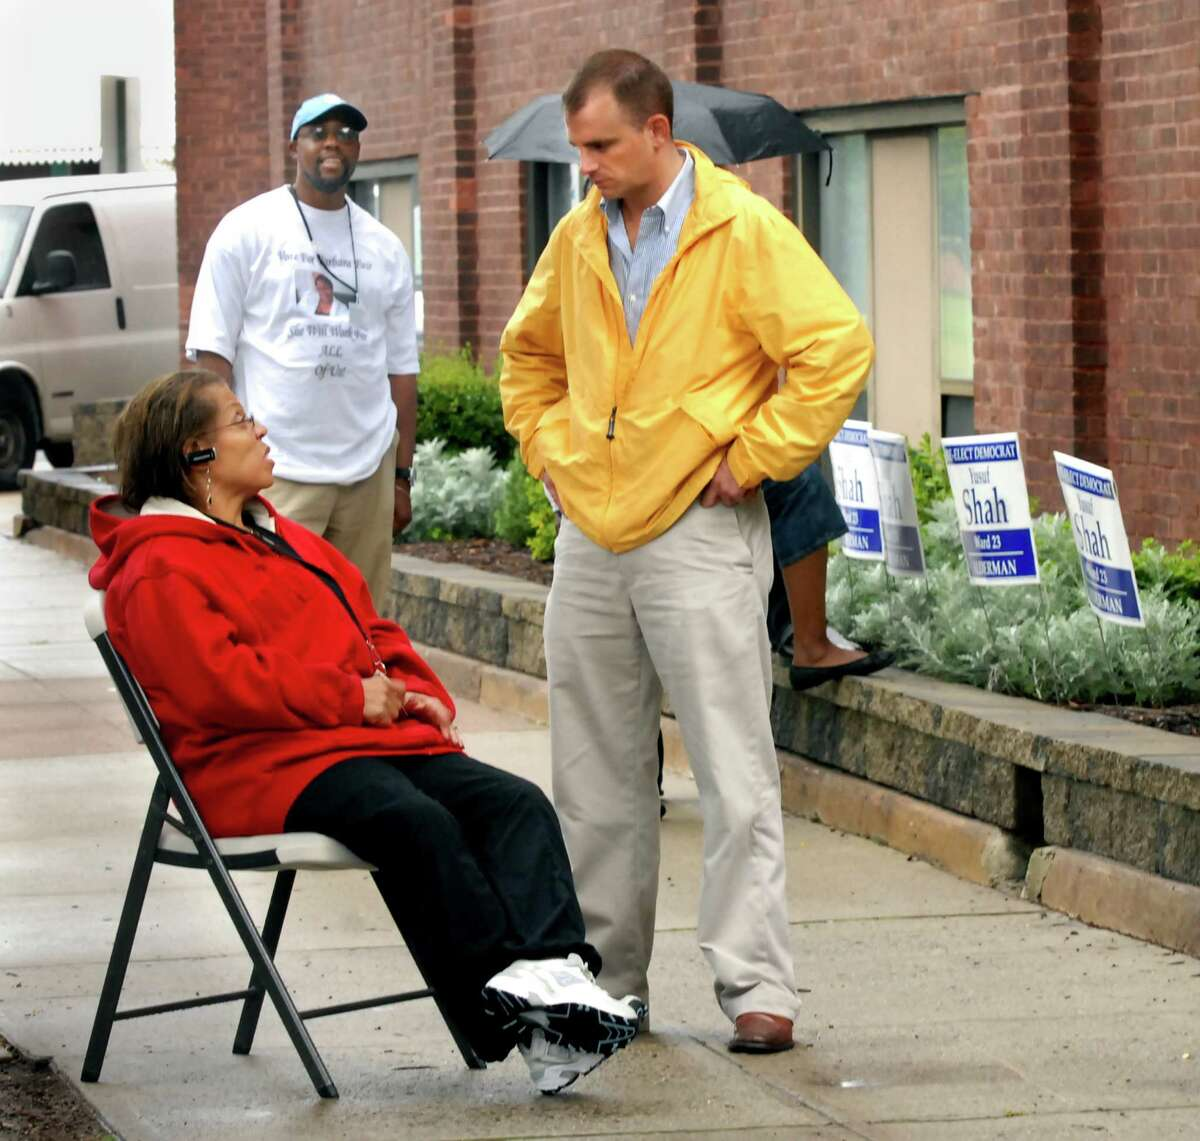 (ms091107)PRIMARY-Jacqueline Harris, Co-chair of ward 23, and Alderman Alex Rhodeen chat in front of the Berger Apartments, where primary voting is taking place. In the background, wearing a tee shirt supporting Barbara Fair, is James Hanton. Melanie Stengel/Register